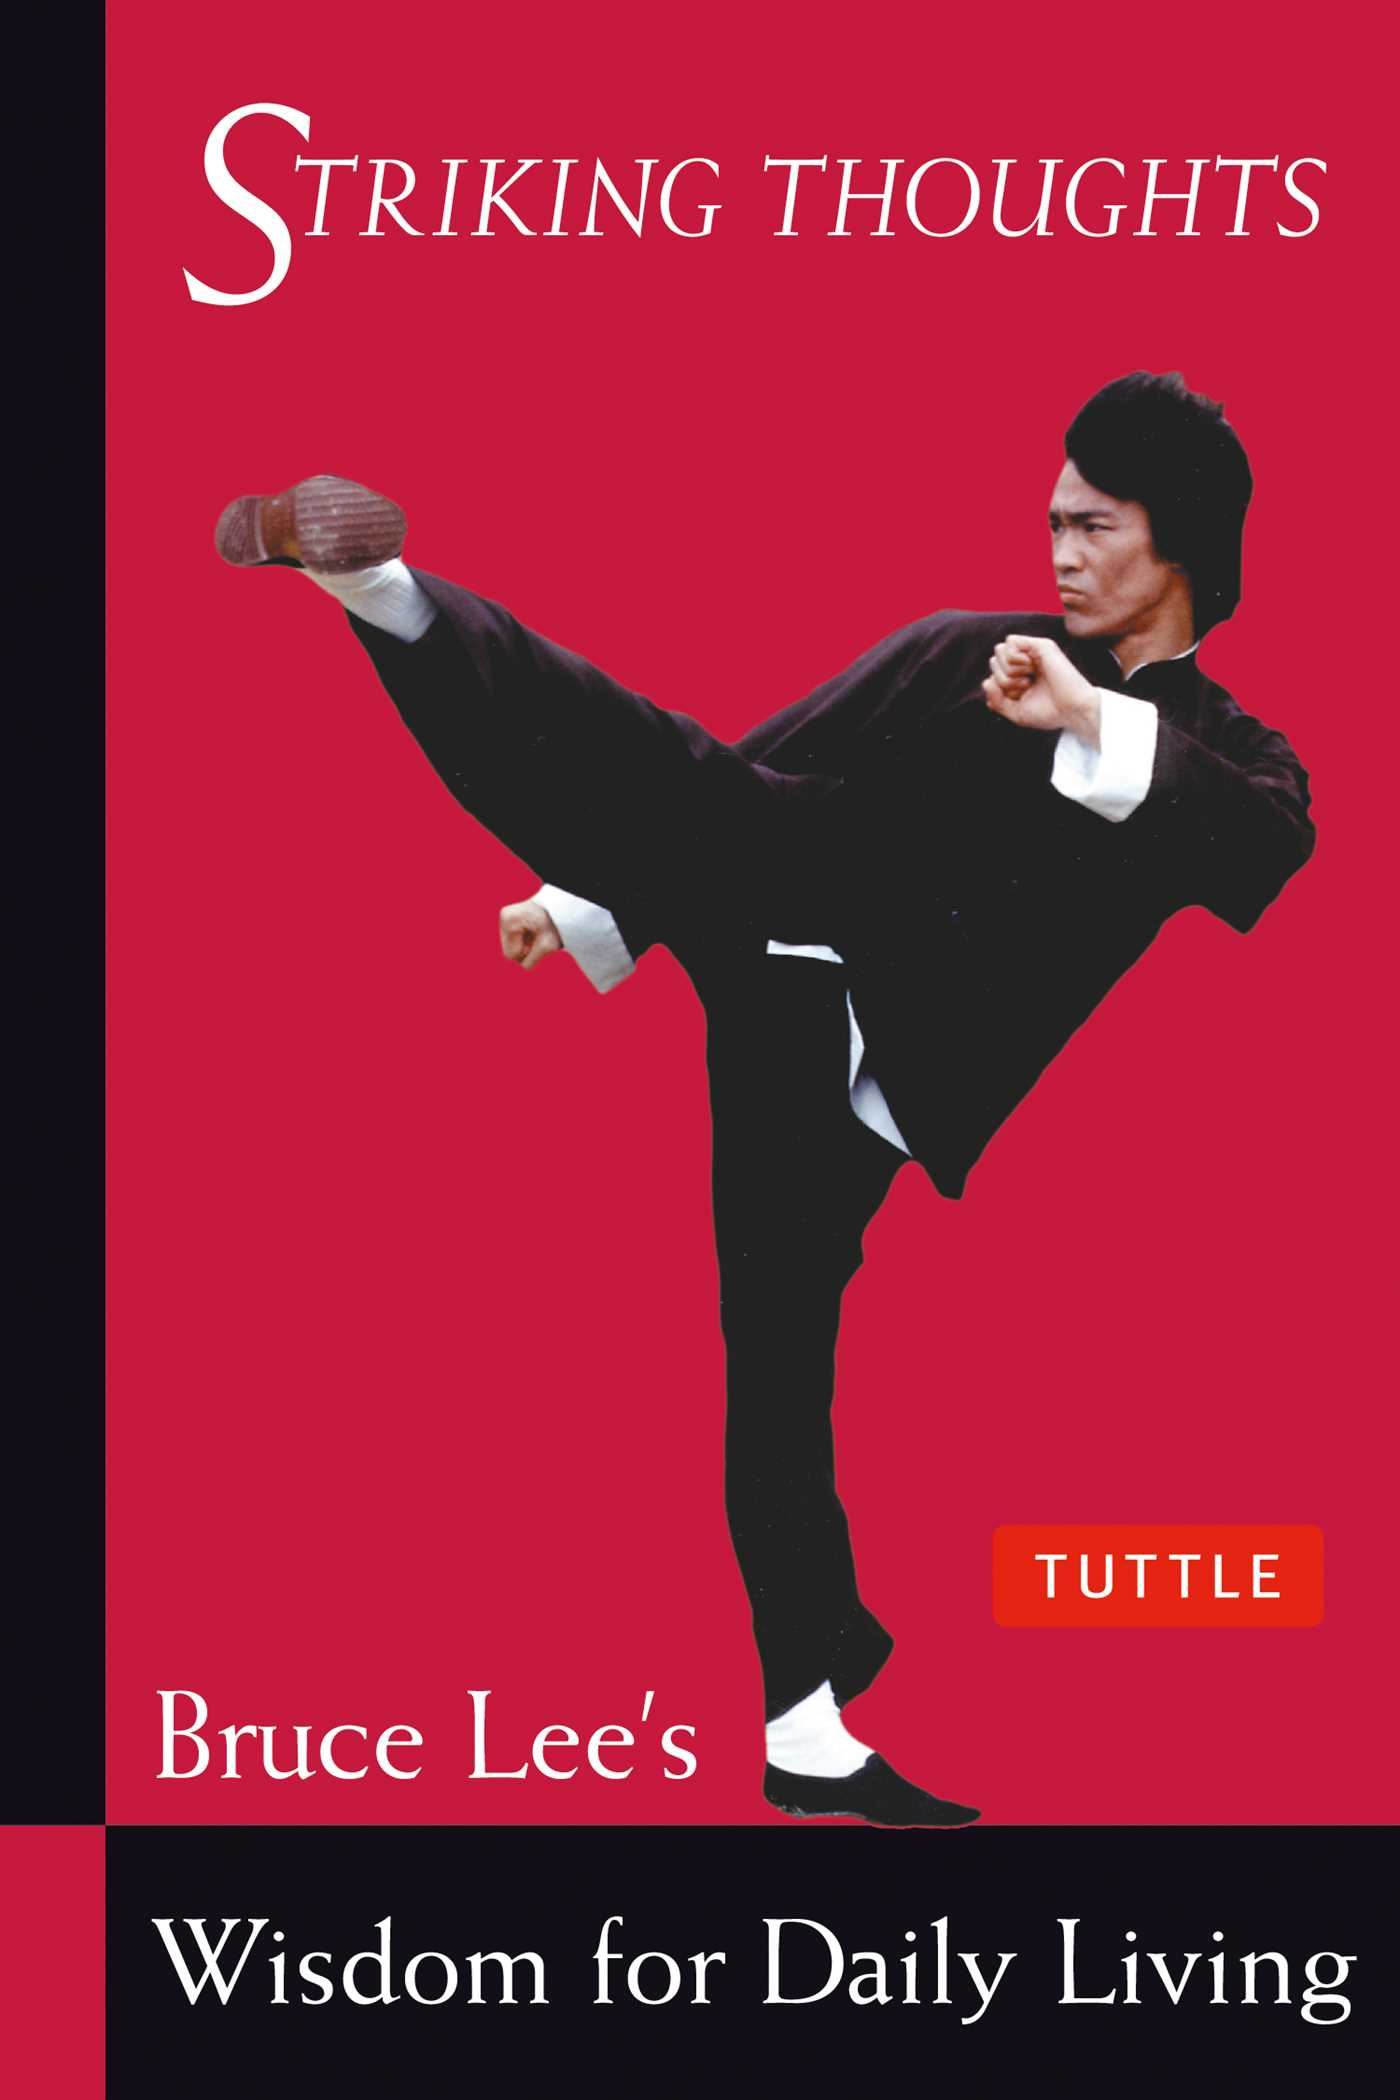 Bruce lee striking thoughts 9780804834711 hr